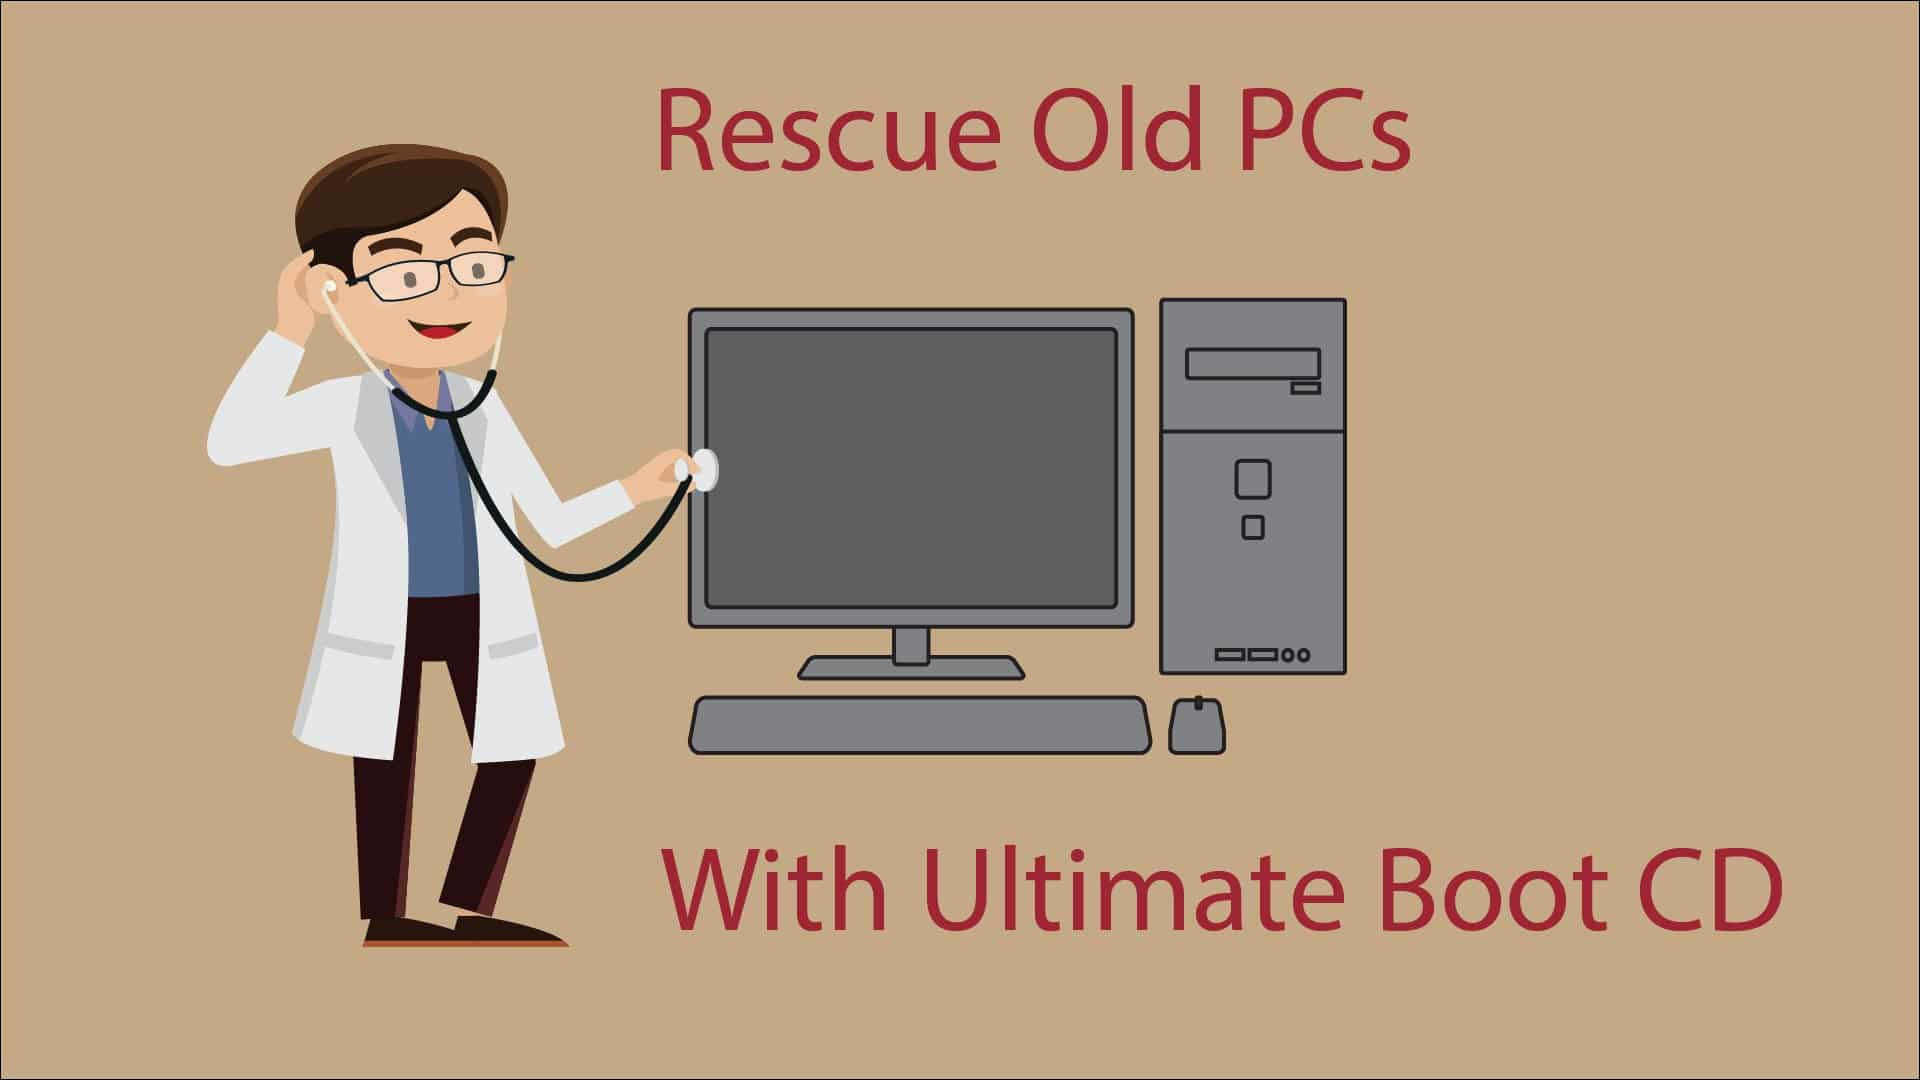 Windows Recovery Disk : Rescue Old PCs with Ultimate Boot CD